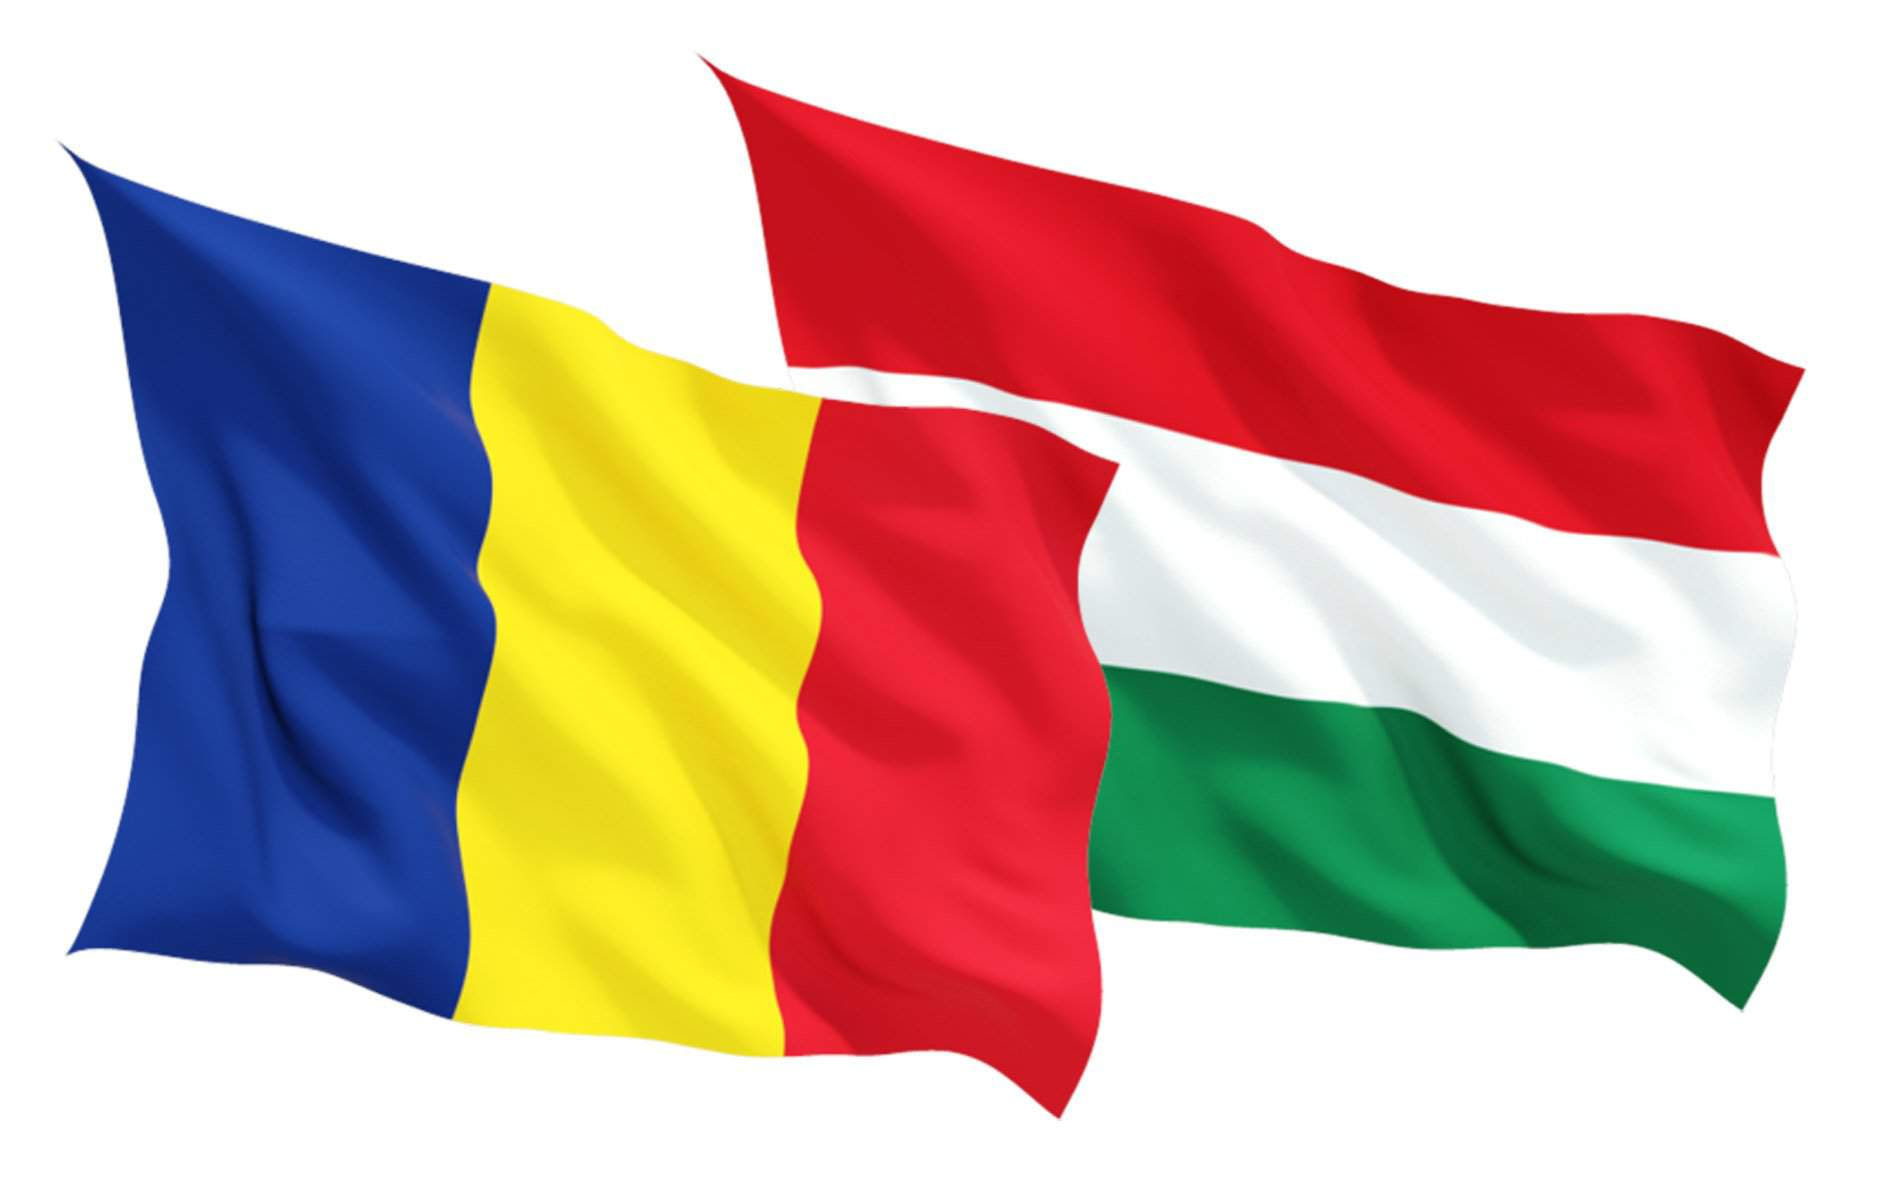 'It is up to Romania to participate in regional cooperation', says Hungarian parliament delegation